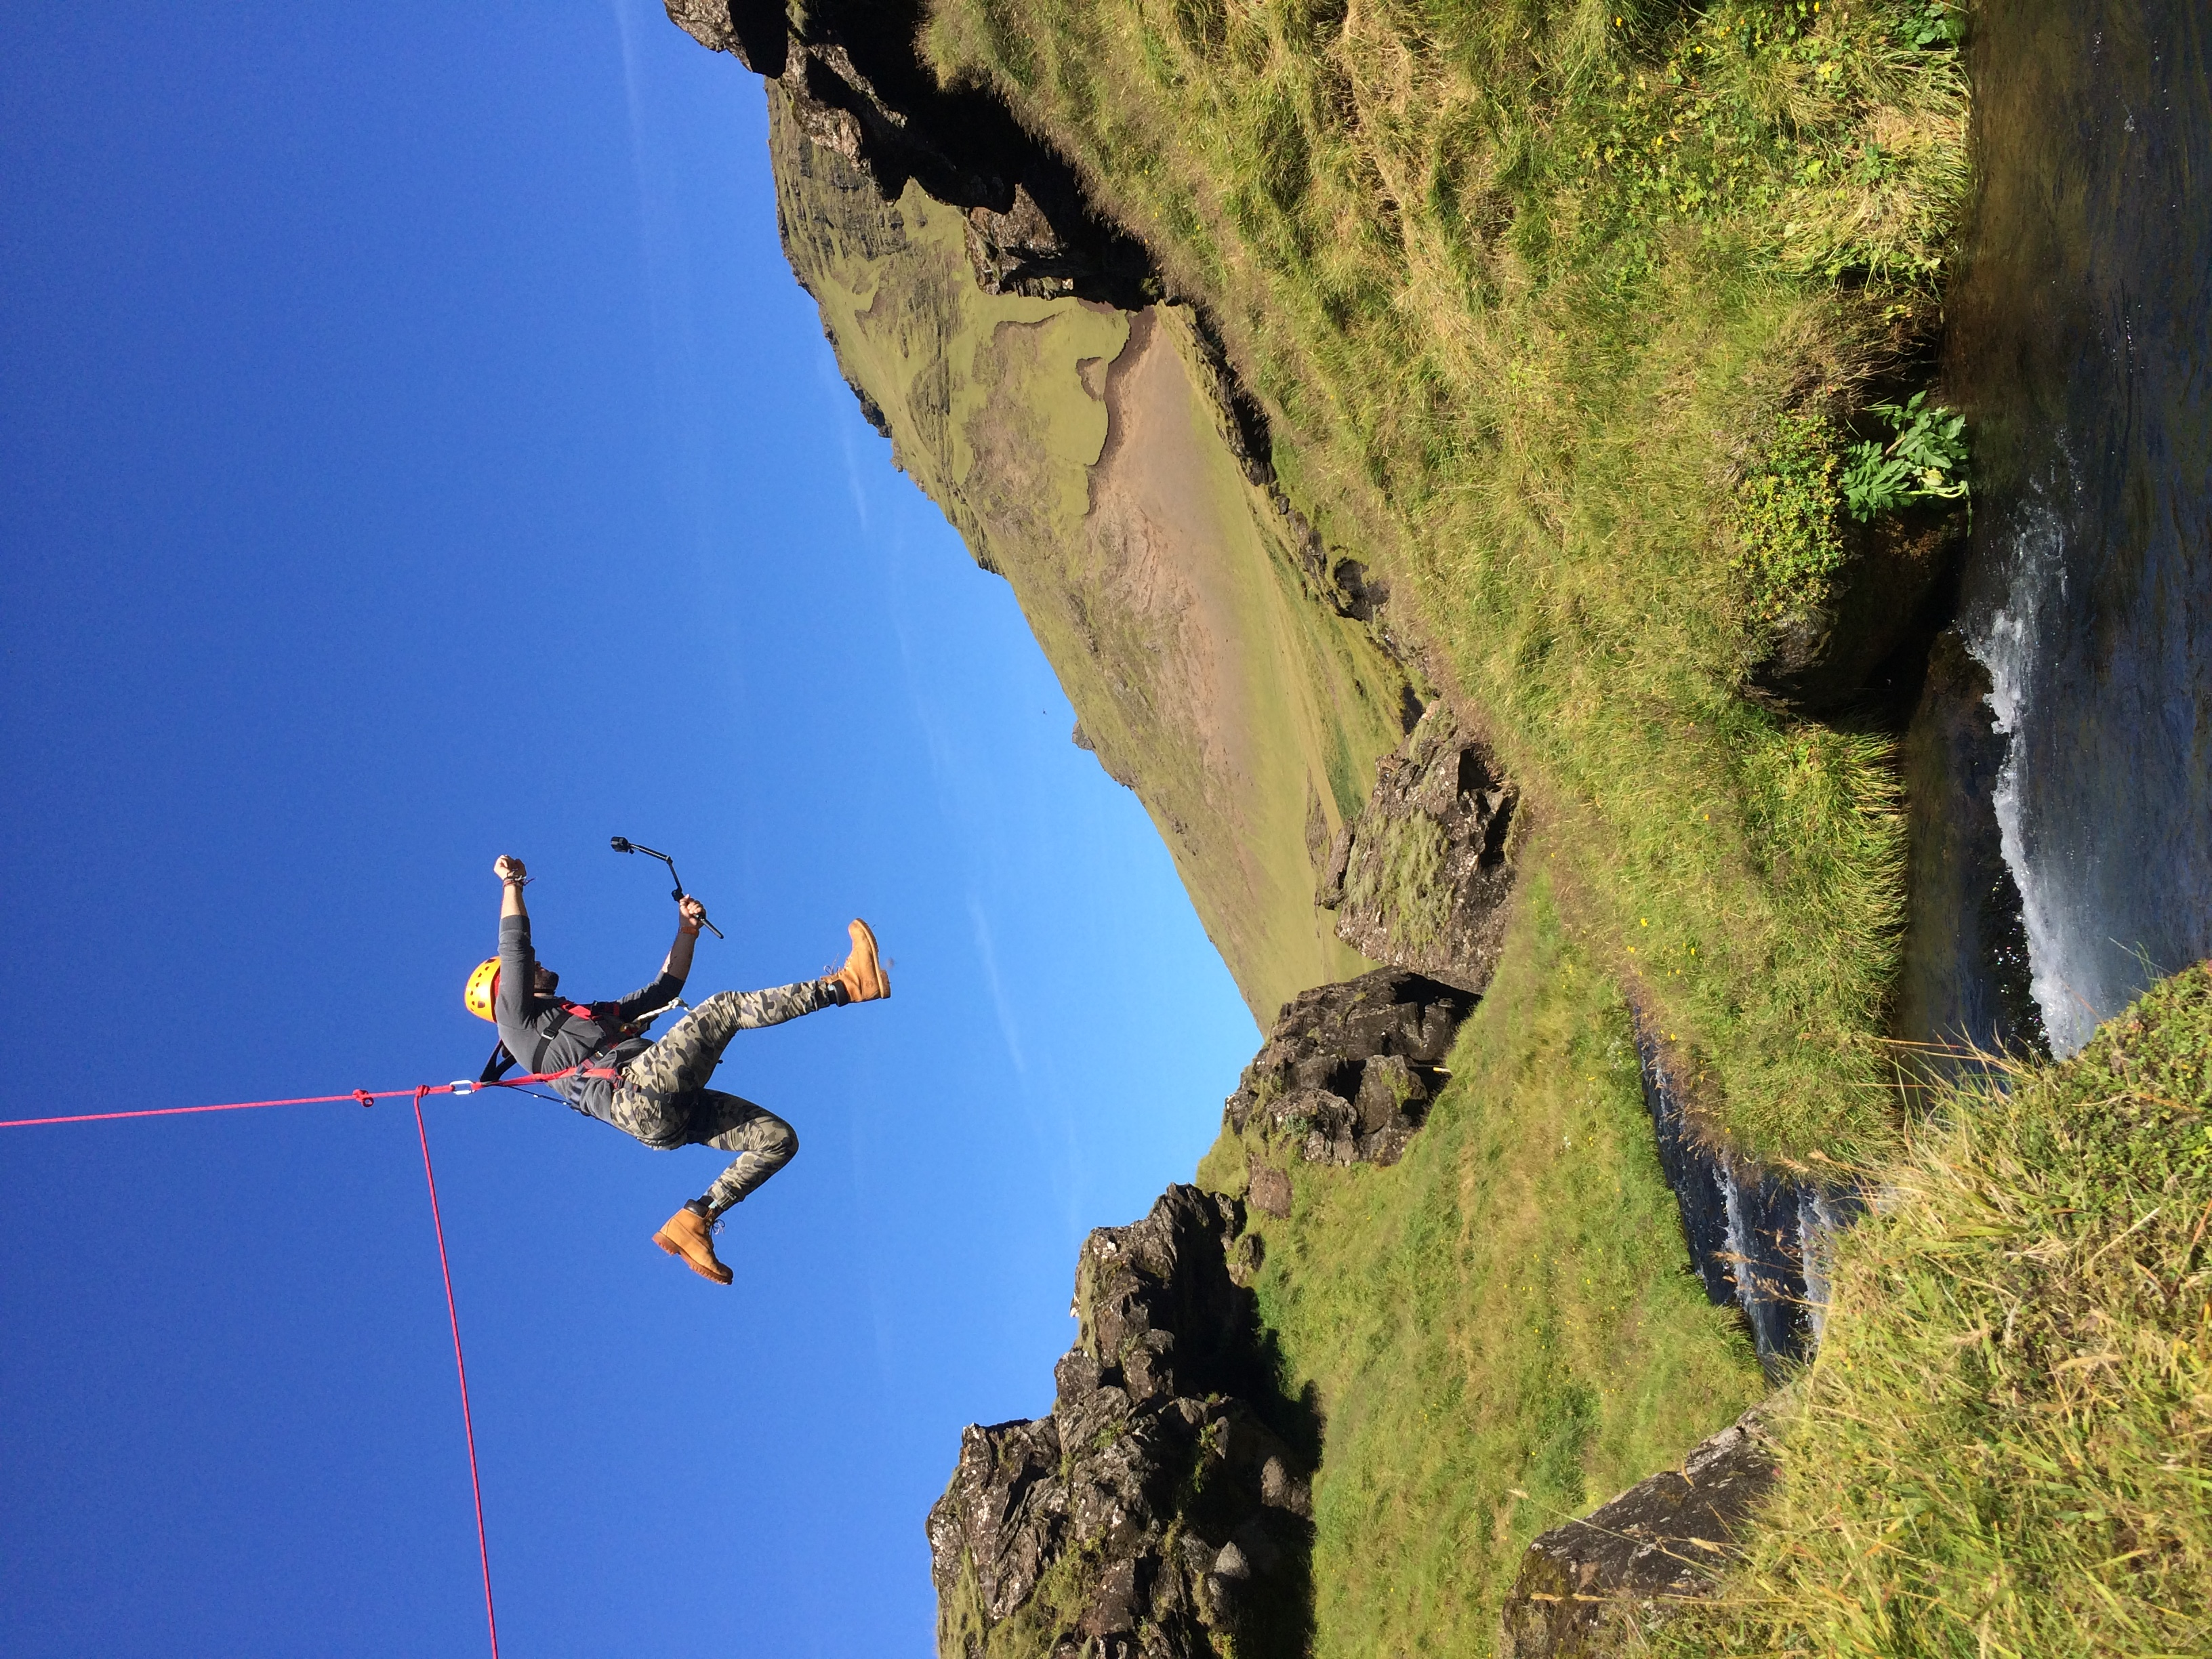 Feel the adrenaline rush through your body on a zipline tour.